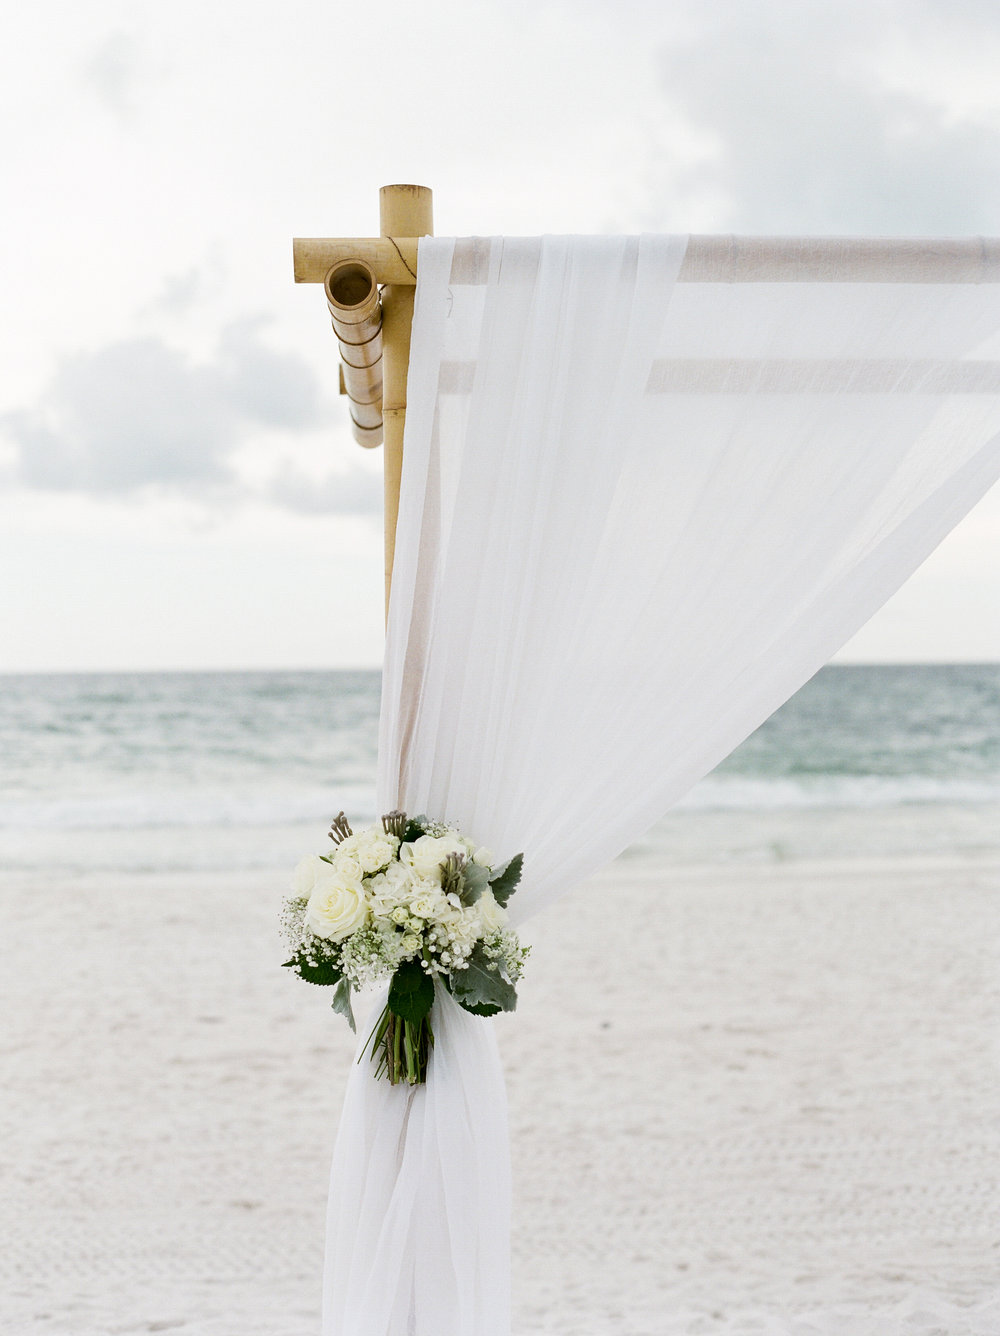 30a-wedding-kayliebpoplinphotography